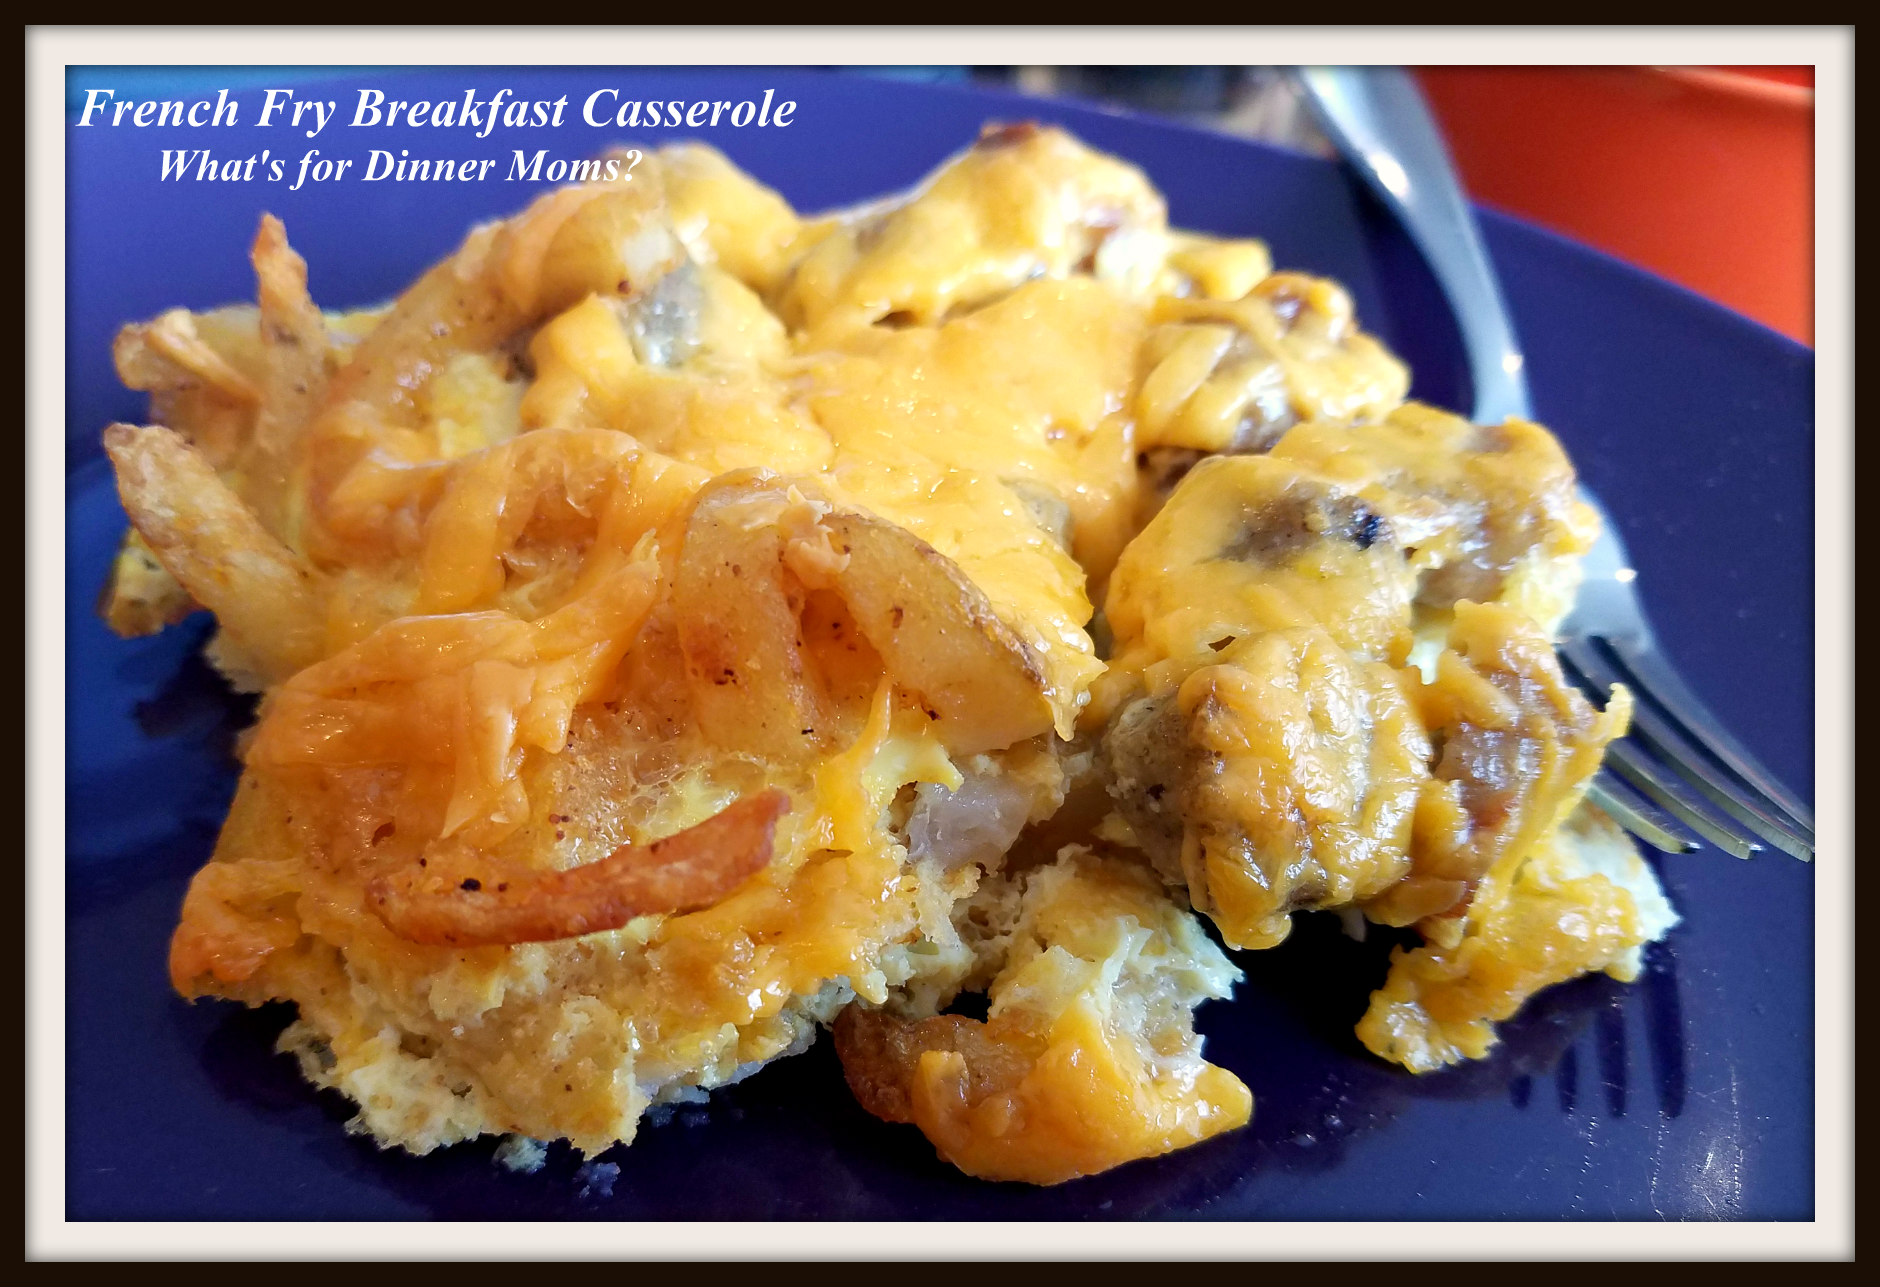 French fry breakfast casserole whats for dinner moms this is to use up the few last remaining pieces from our basket for no buy january remember i said at the end of the month if i had anything left in forumfinder Gallery